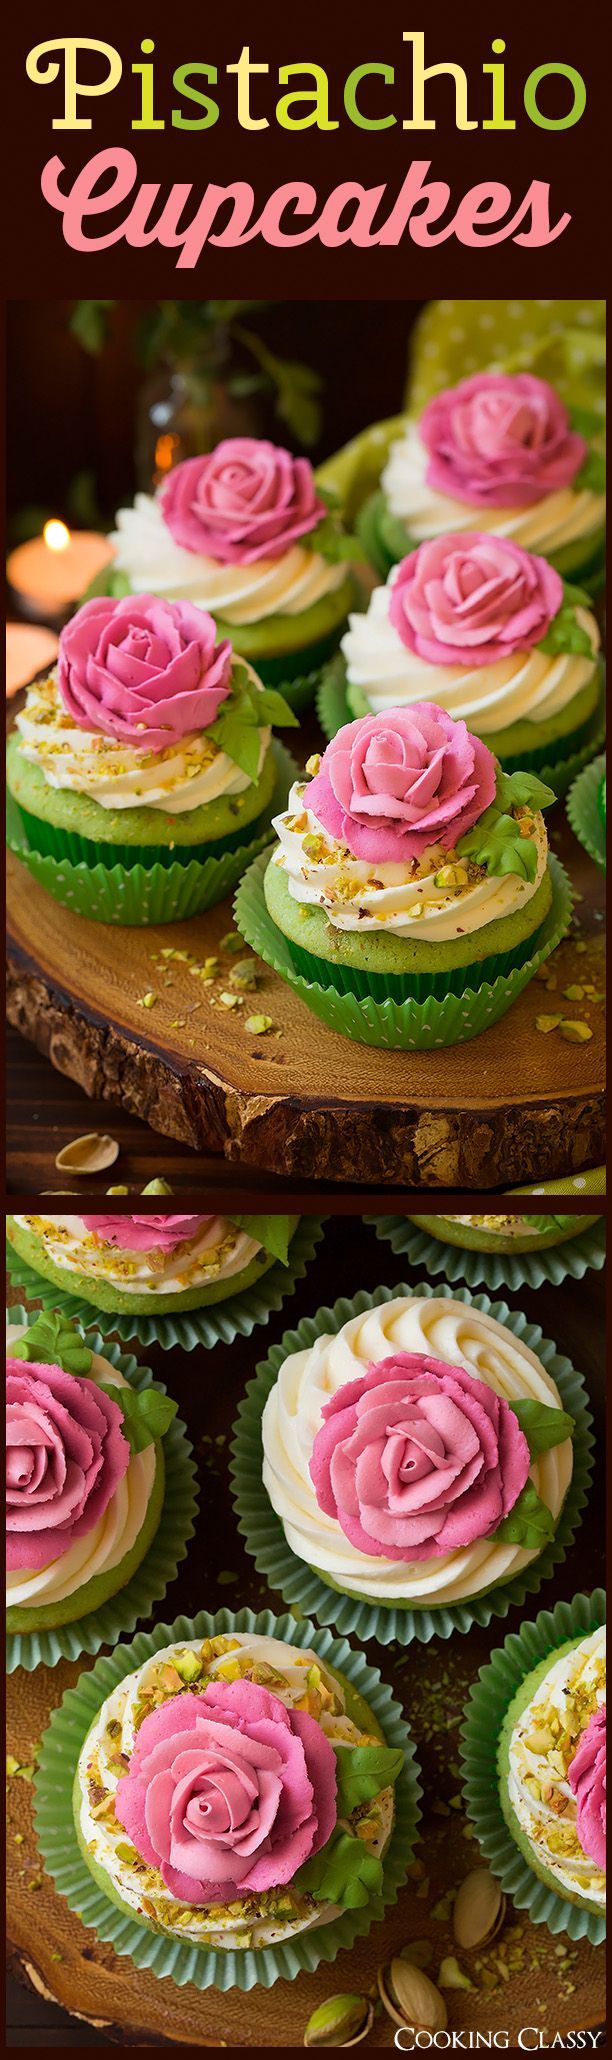 best ideas about Cupcake icing on Pinterest | Frosting, Cupcake icing ...